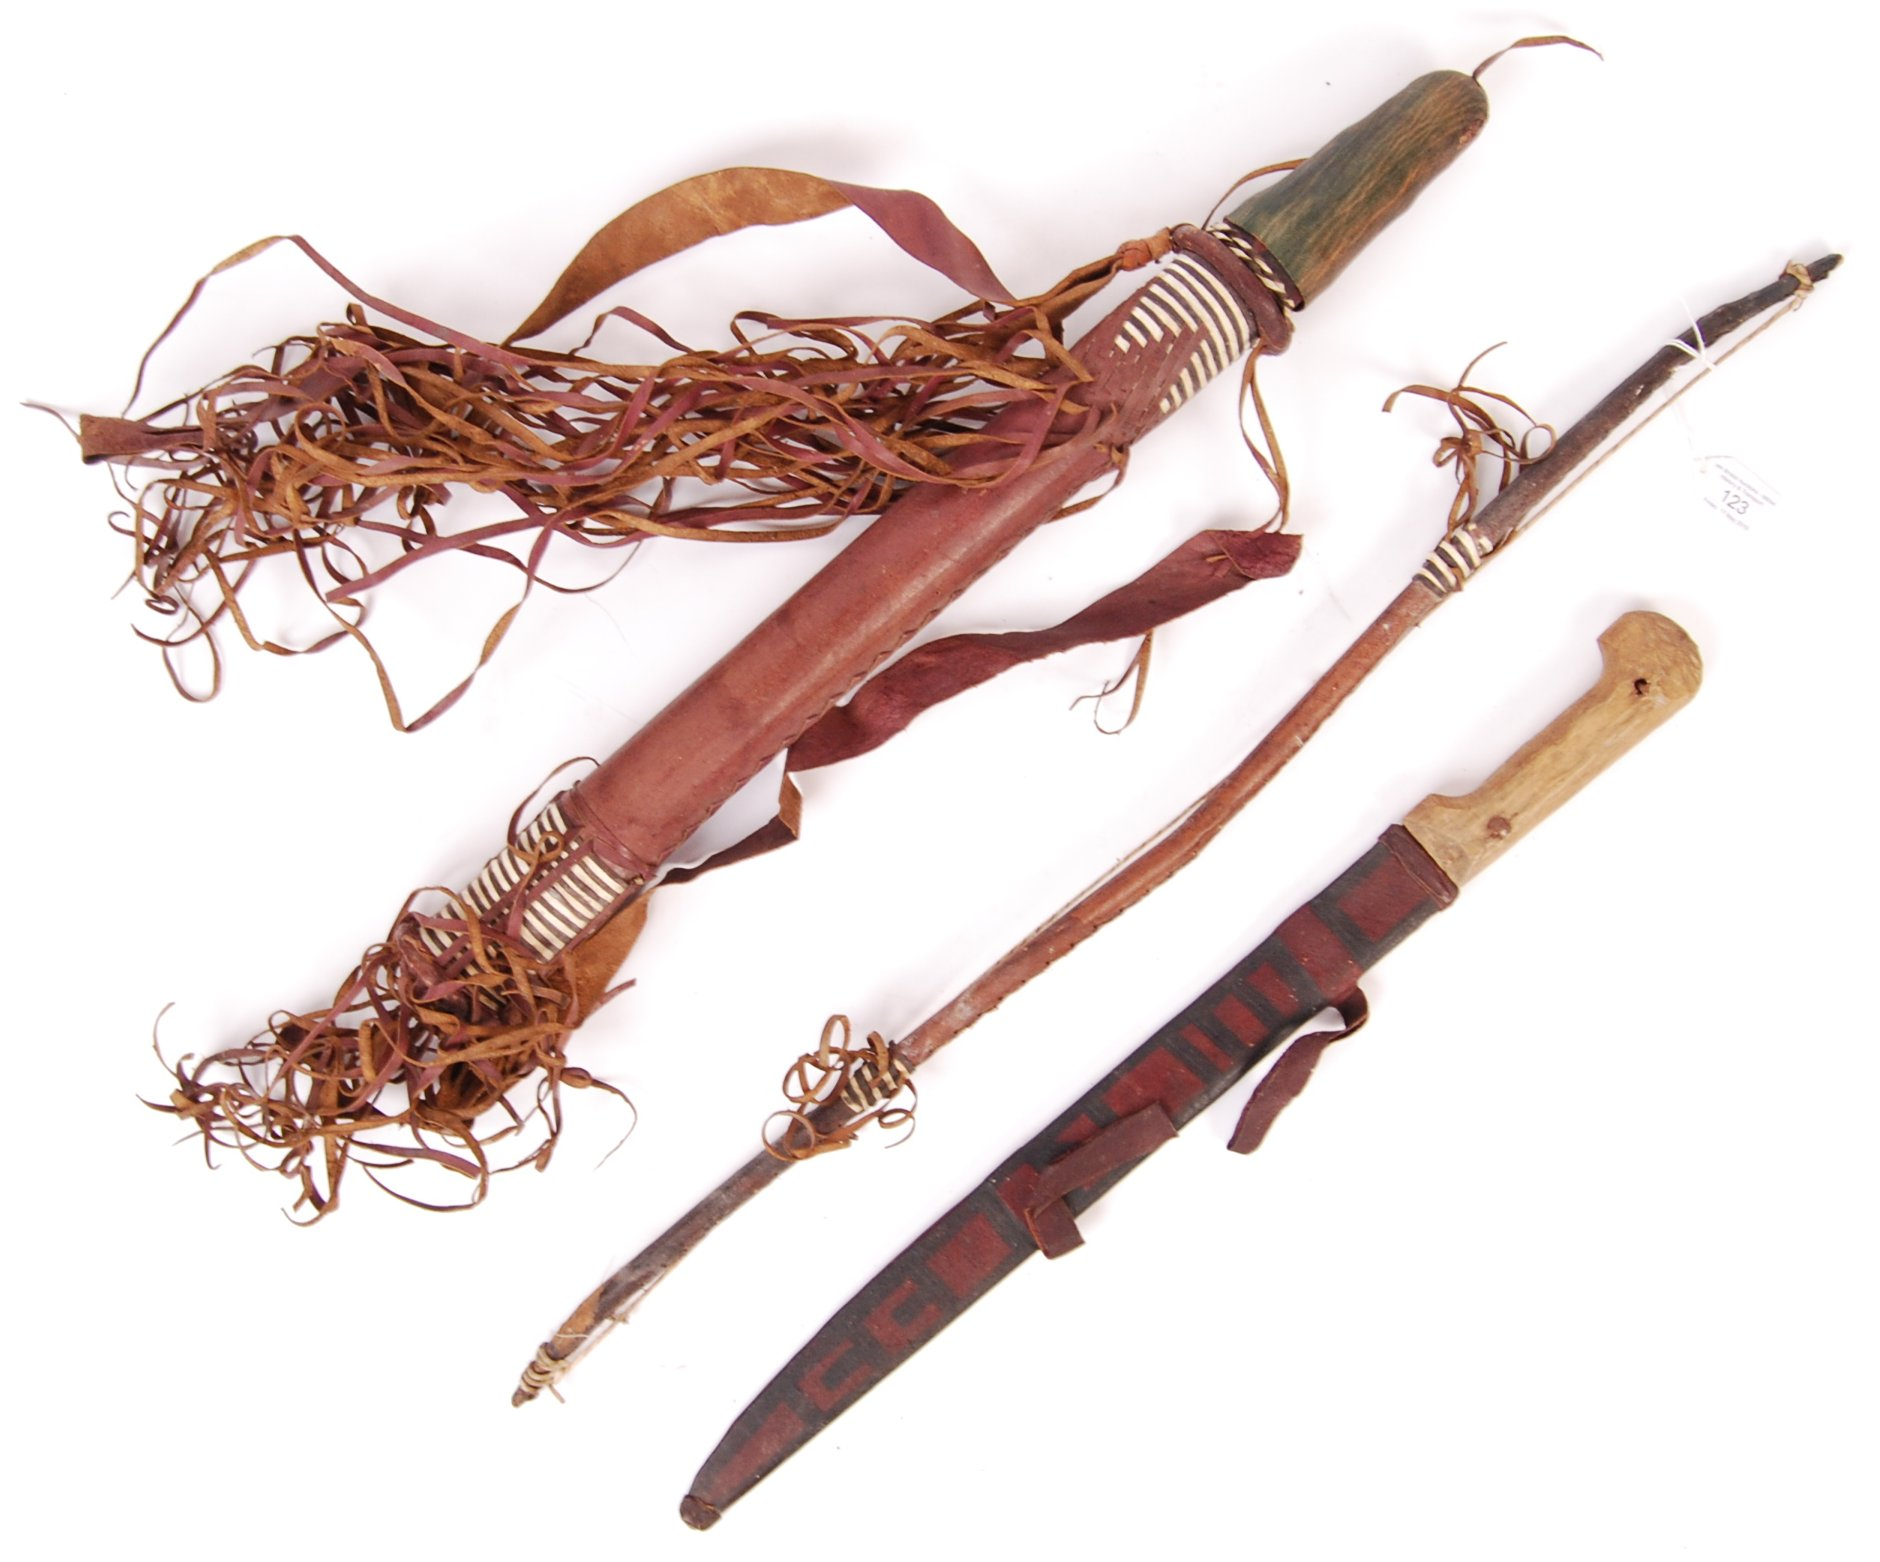 EARLY 20TH CENTURY AFRICAN TRIBAL QUIVER, BOW AND ARROWS